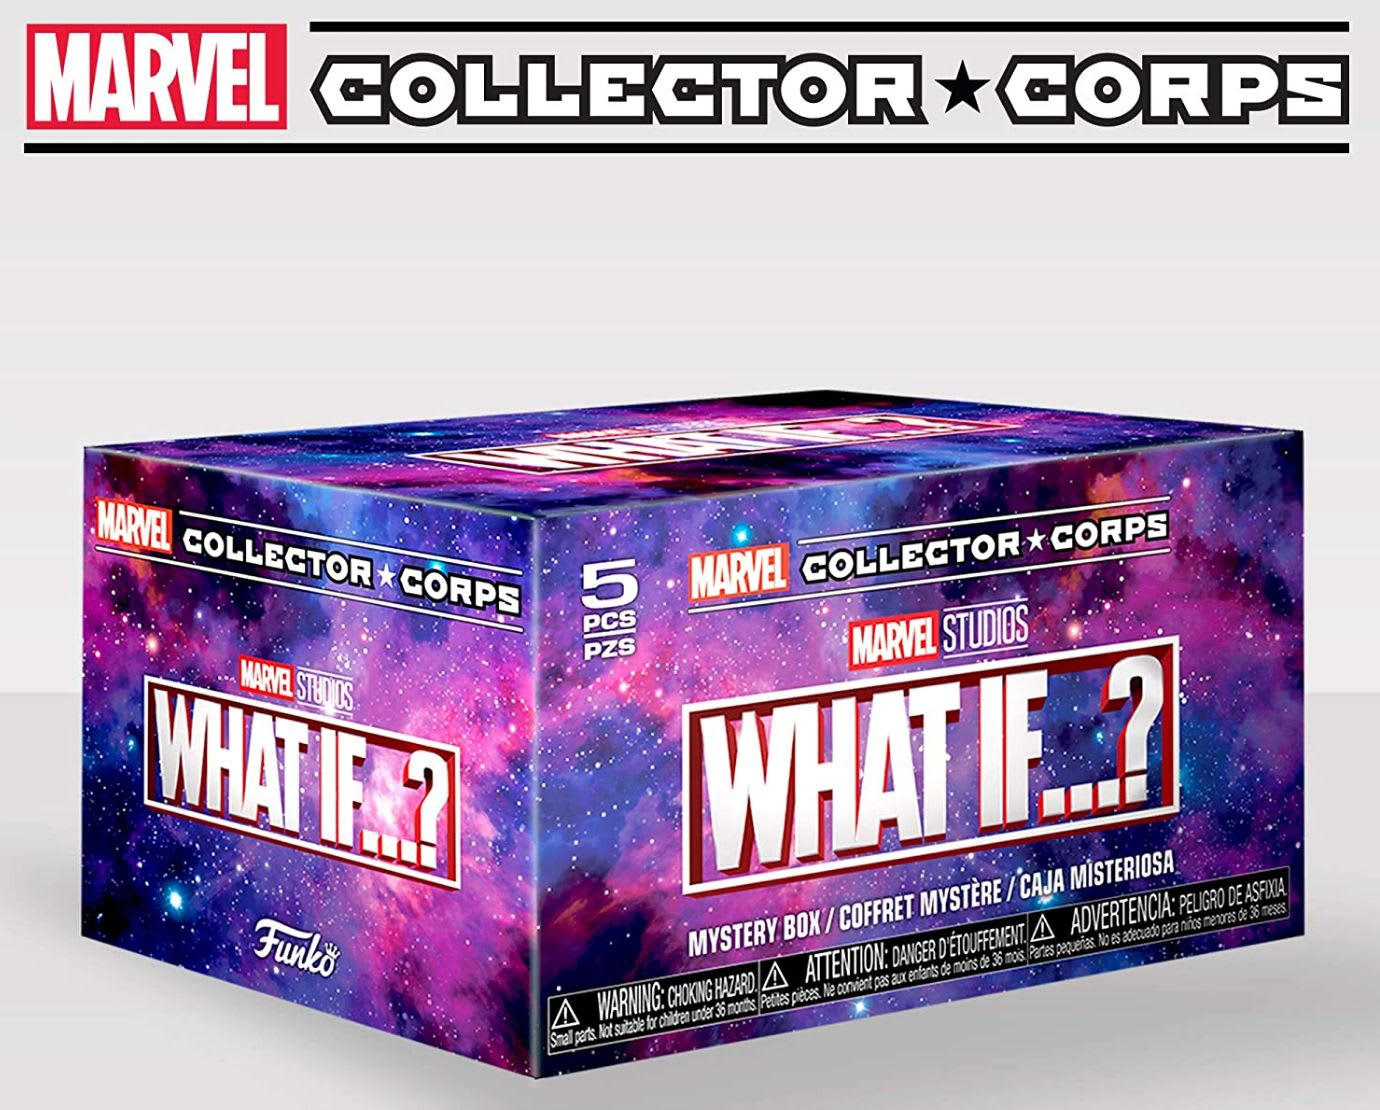 Discover Funko's Marvel Collector Corps subscription box on Amazon.